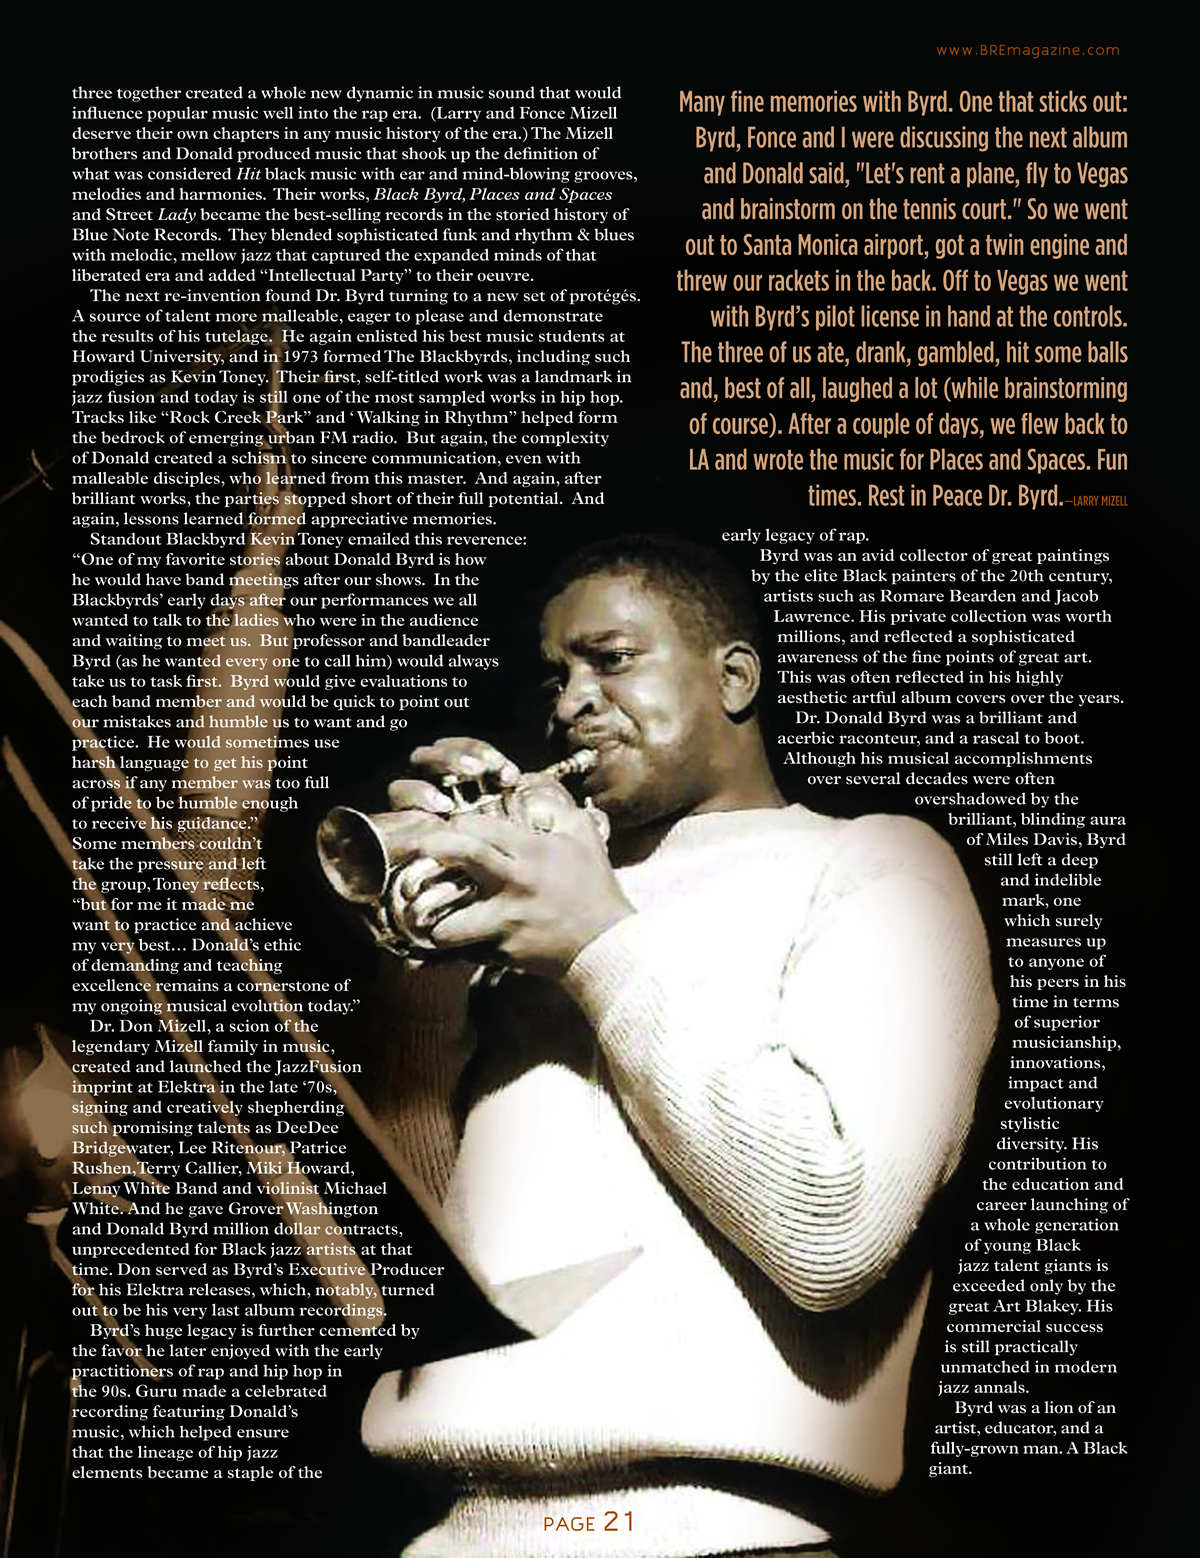 Donald_Byrd_article-page2